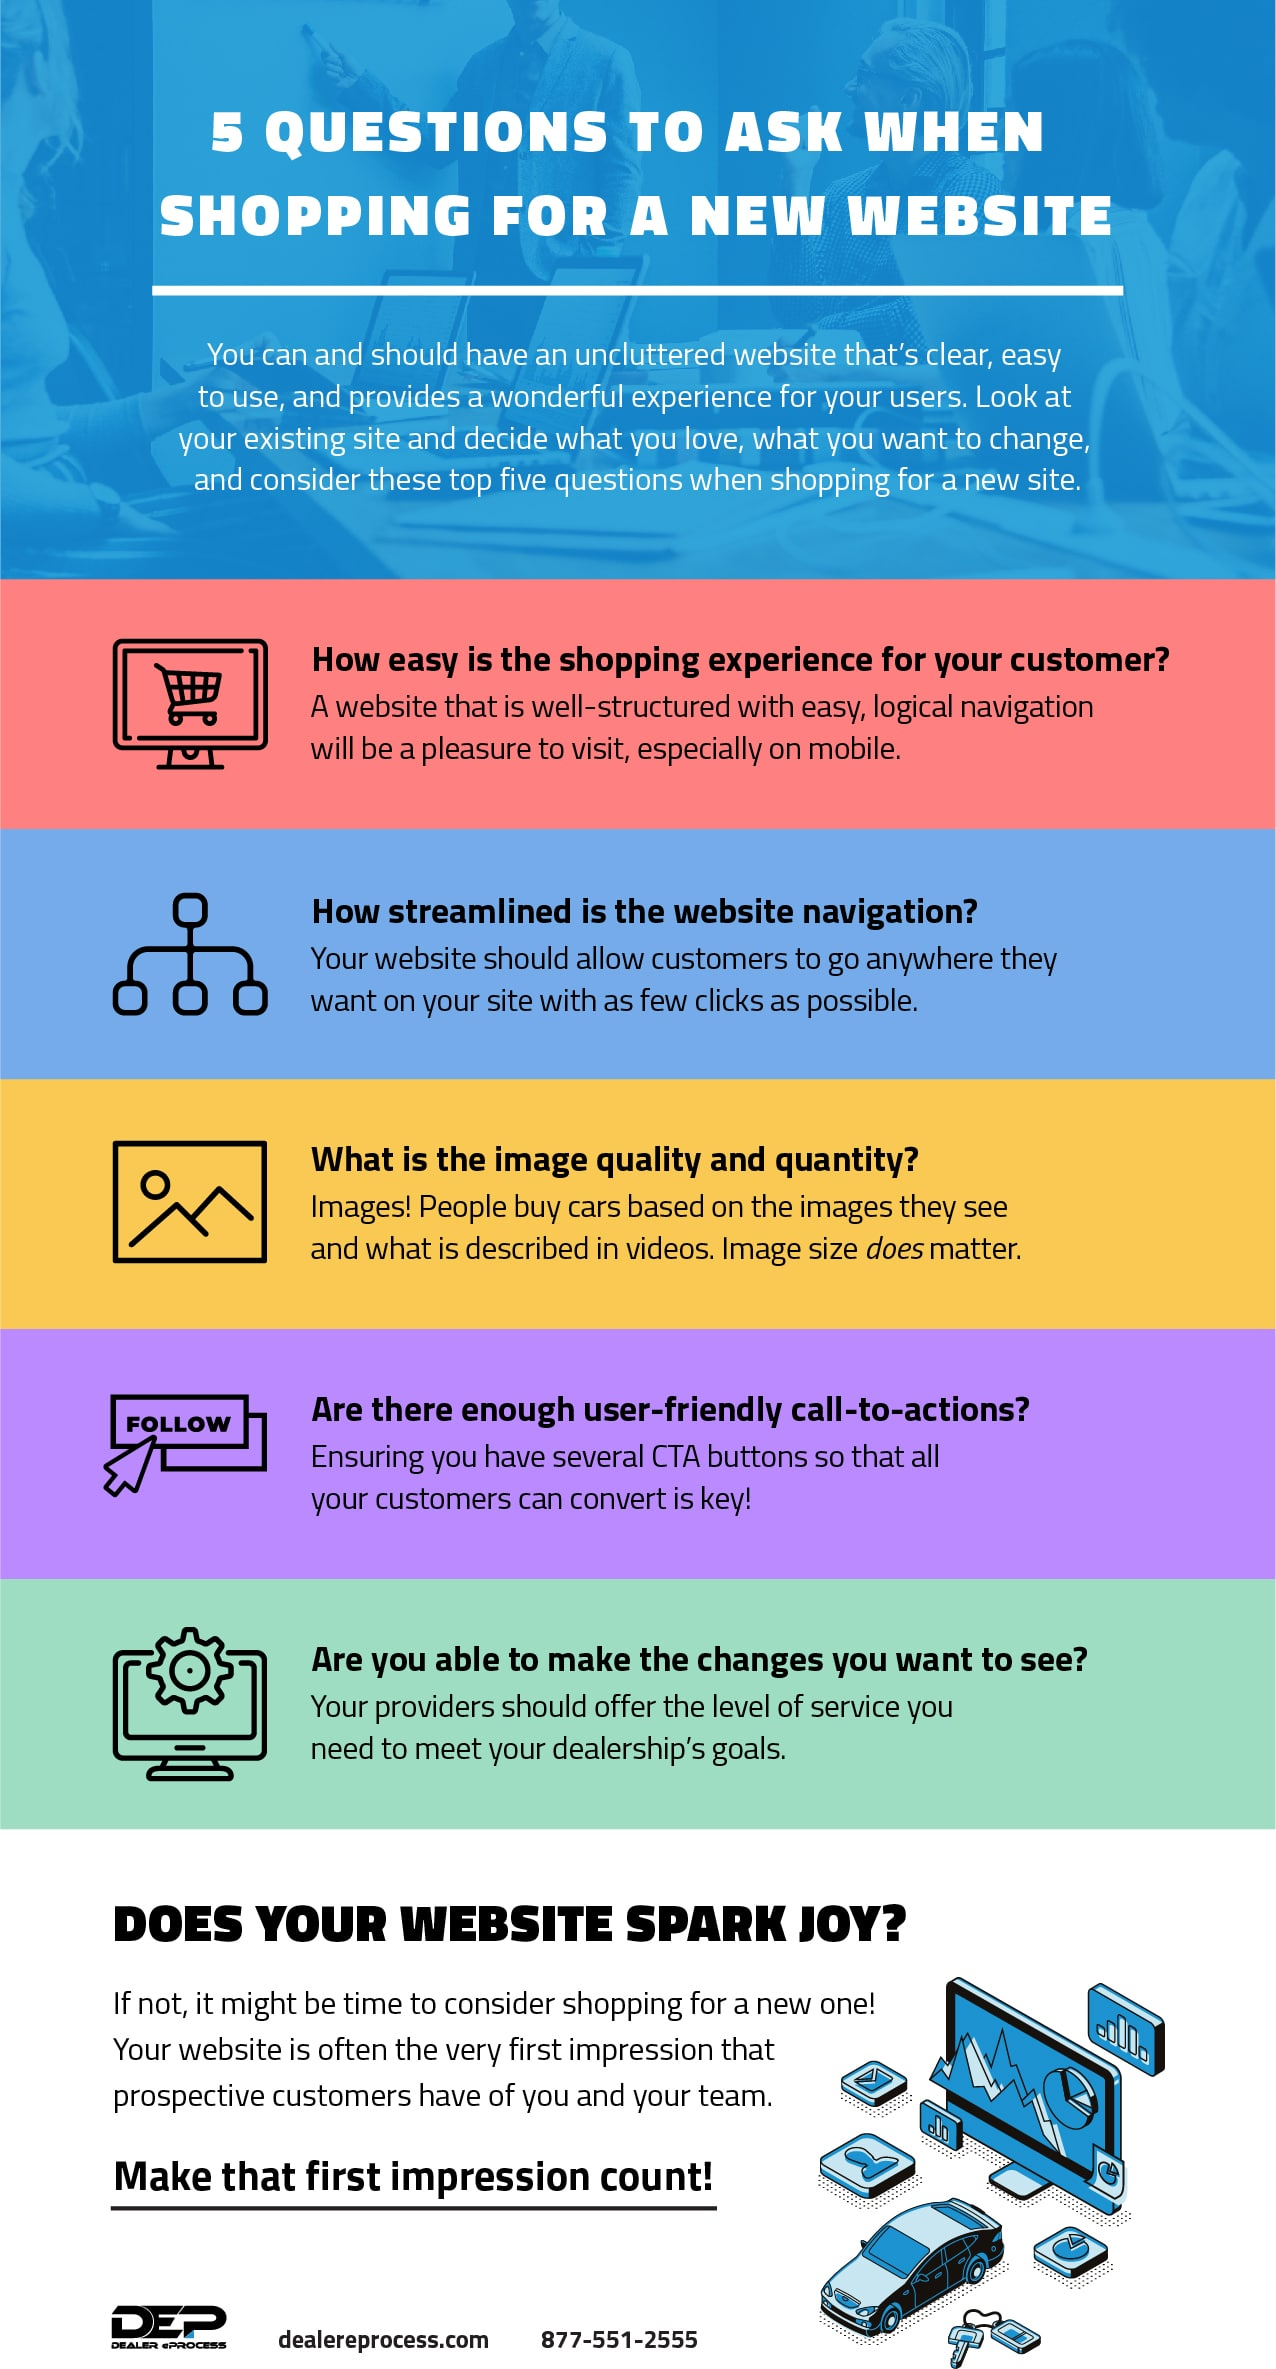 five questions to ask when shopping for a new website infographic